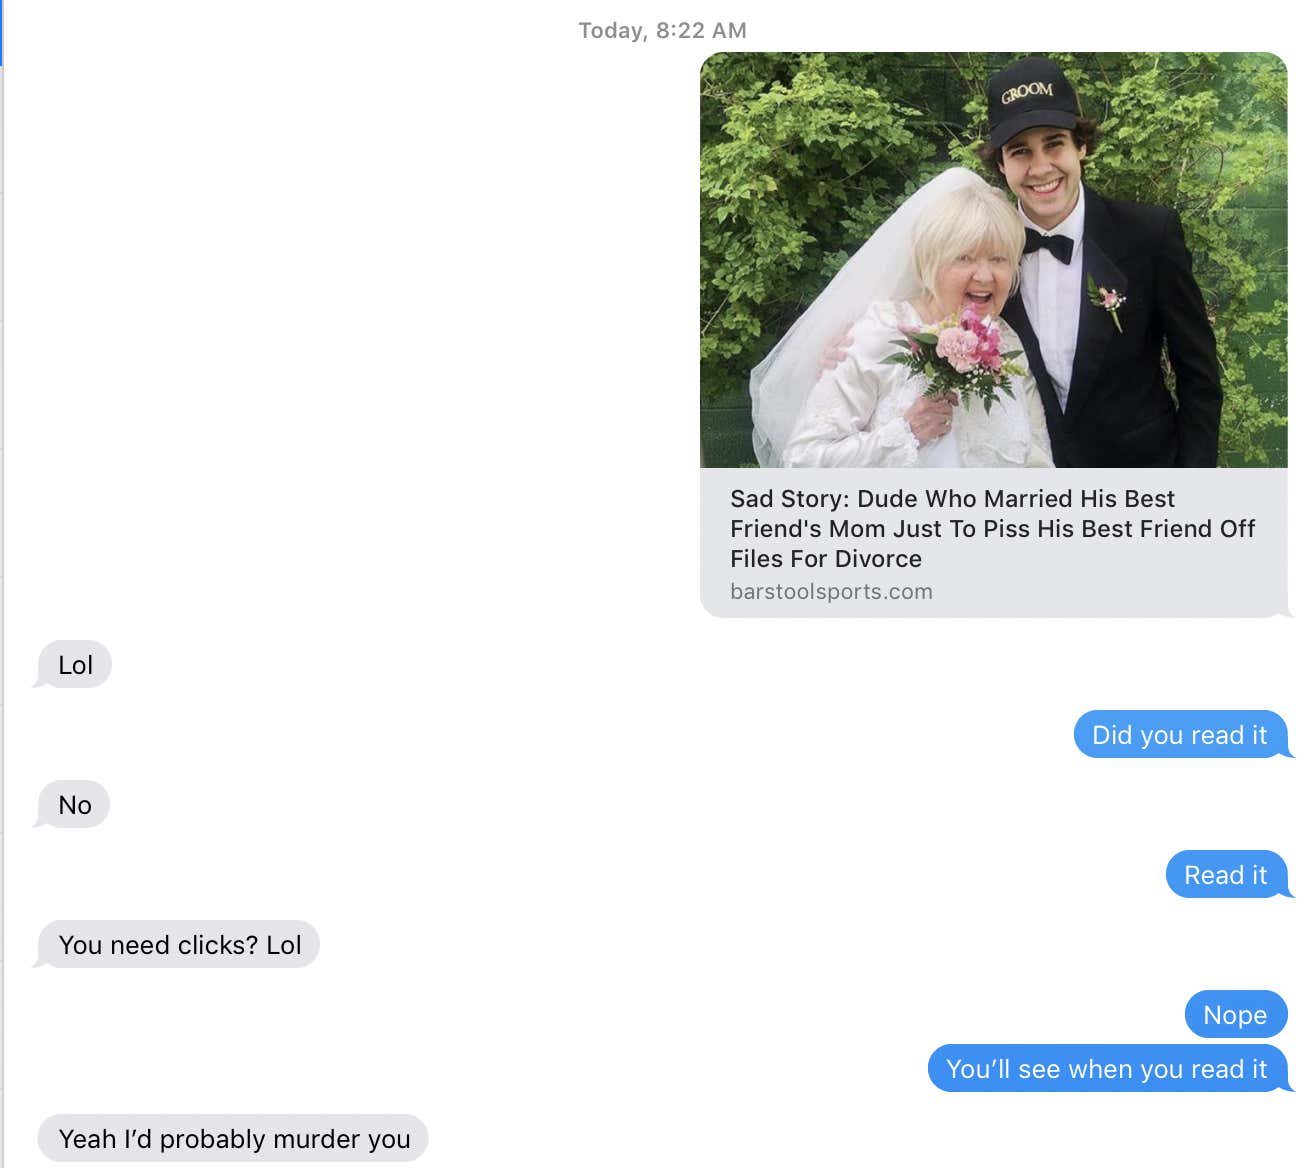 Sad Story: Dude Who Married His Best Friend's Mom Just To